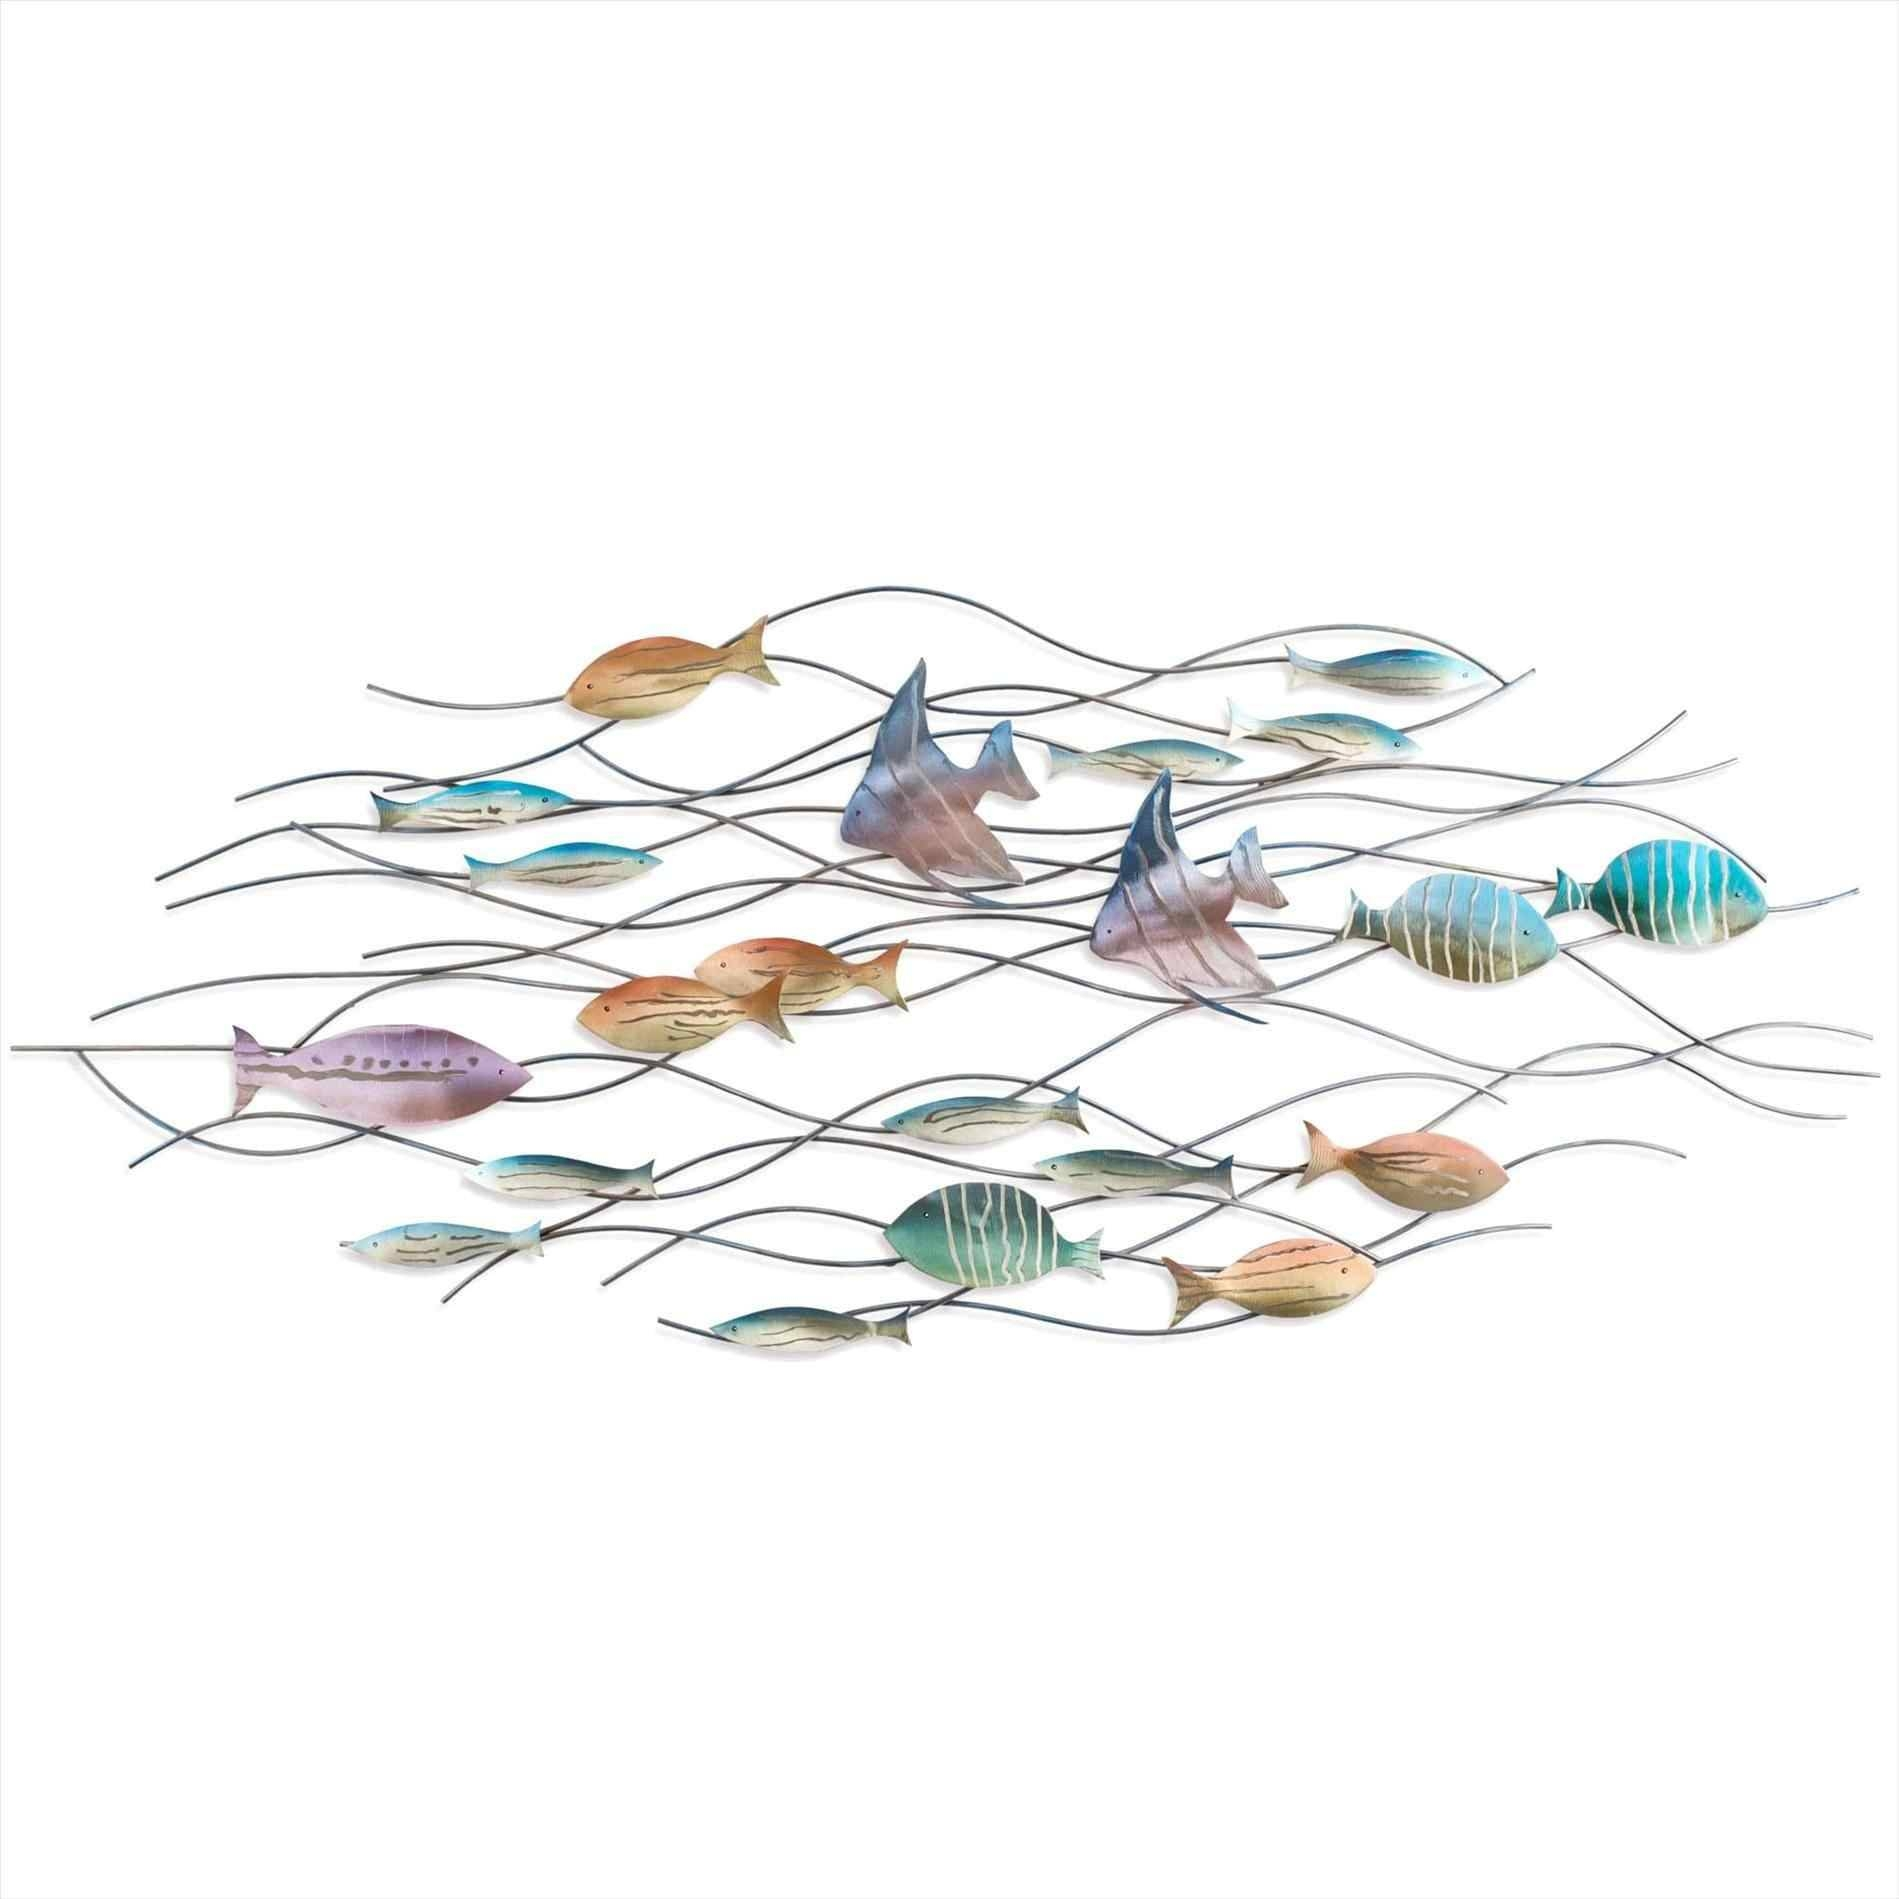 Metal Fish Wall Art New Zealand Ocean Gems Decor Bronze Design Uk Pertaining To Latest New Zealand Metal Wall Art (View 15 of 20)